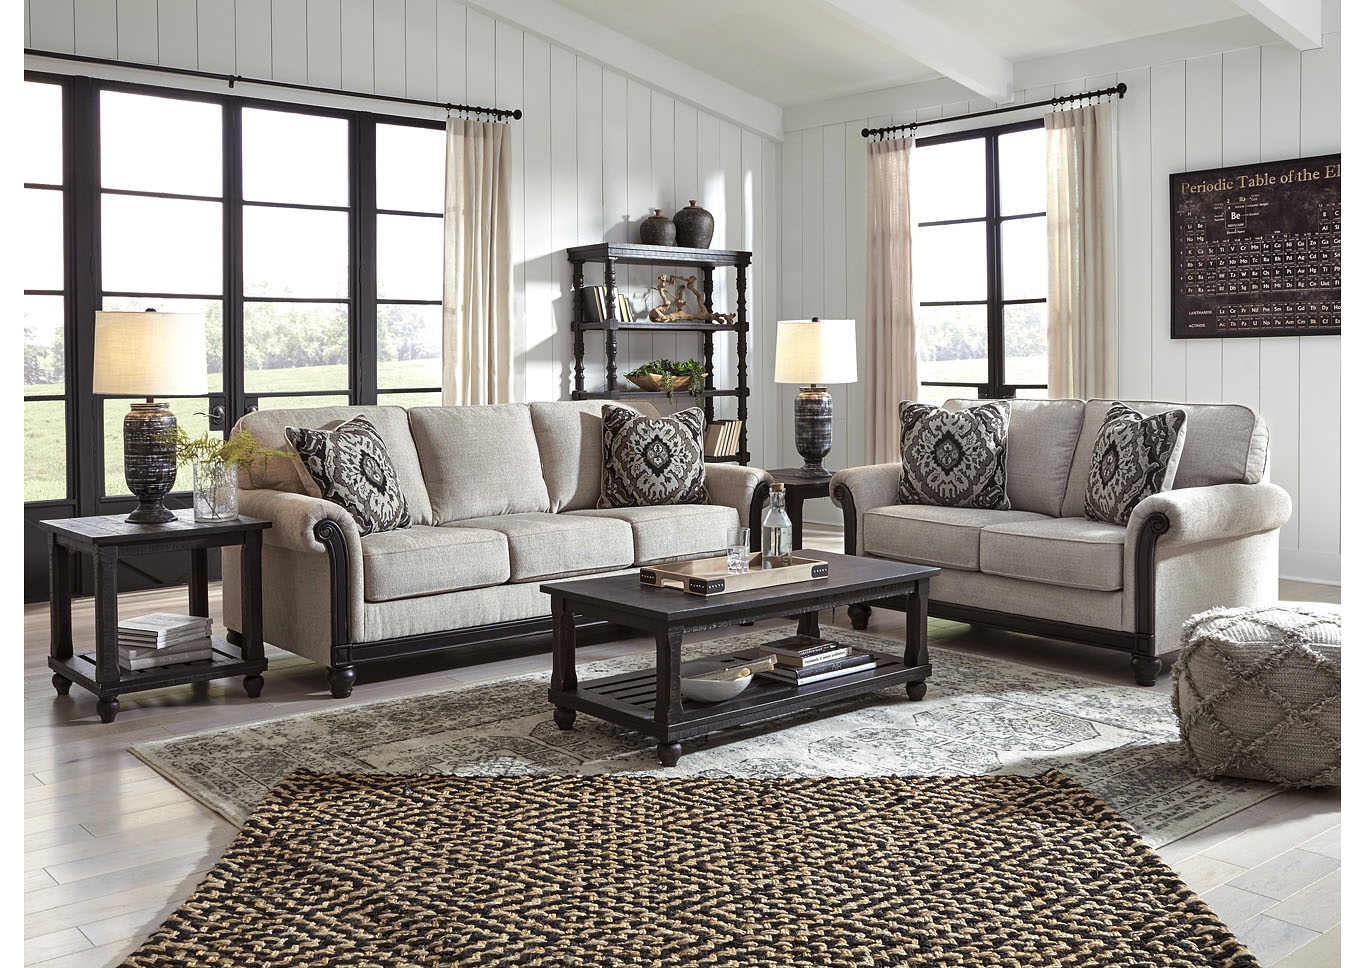 Benbrook Ash Sofa and Loveseat,Signature Design By Ashley